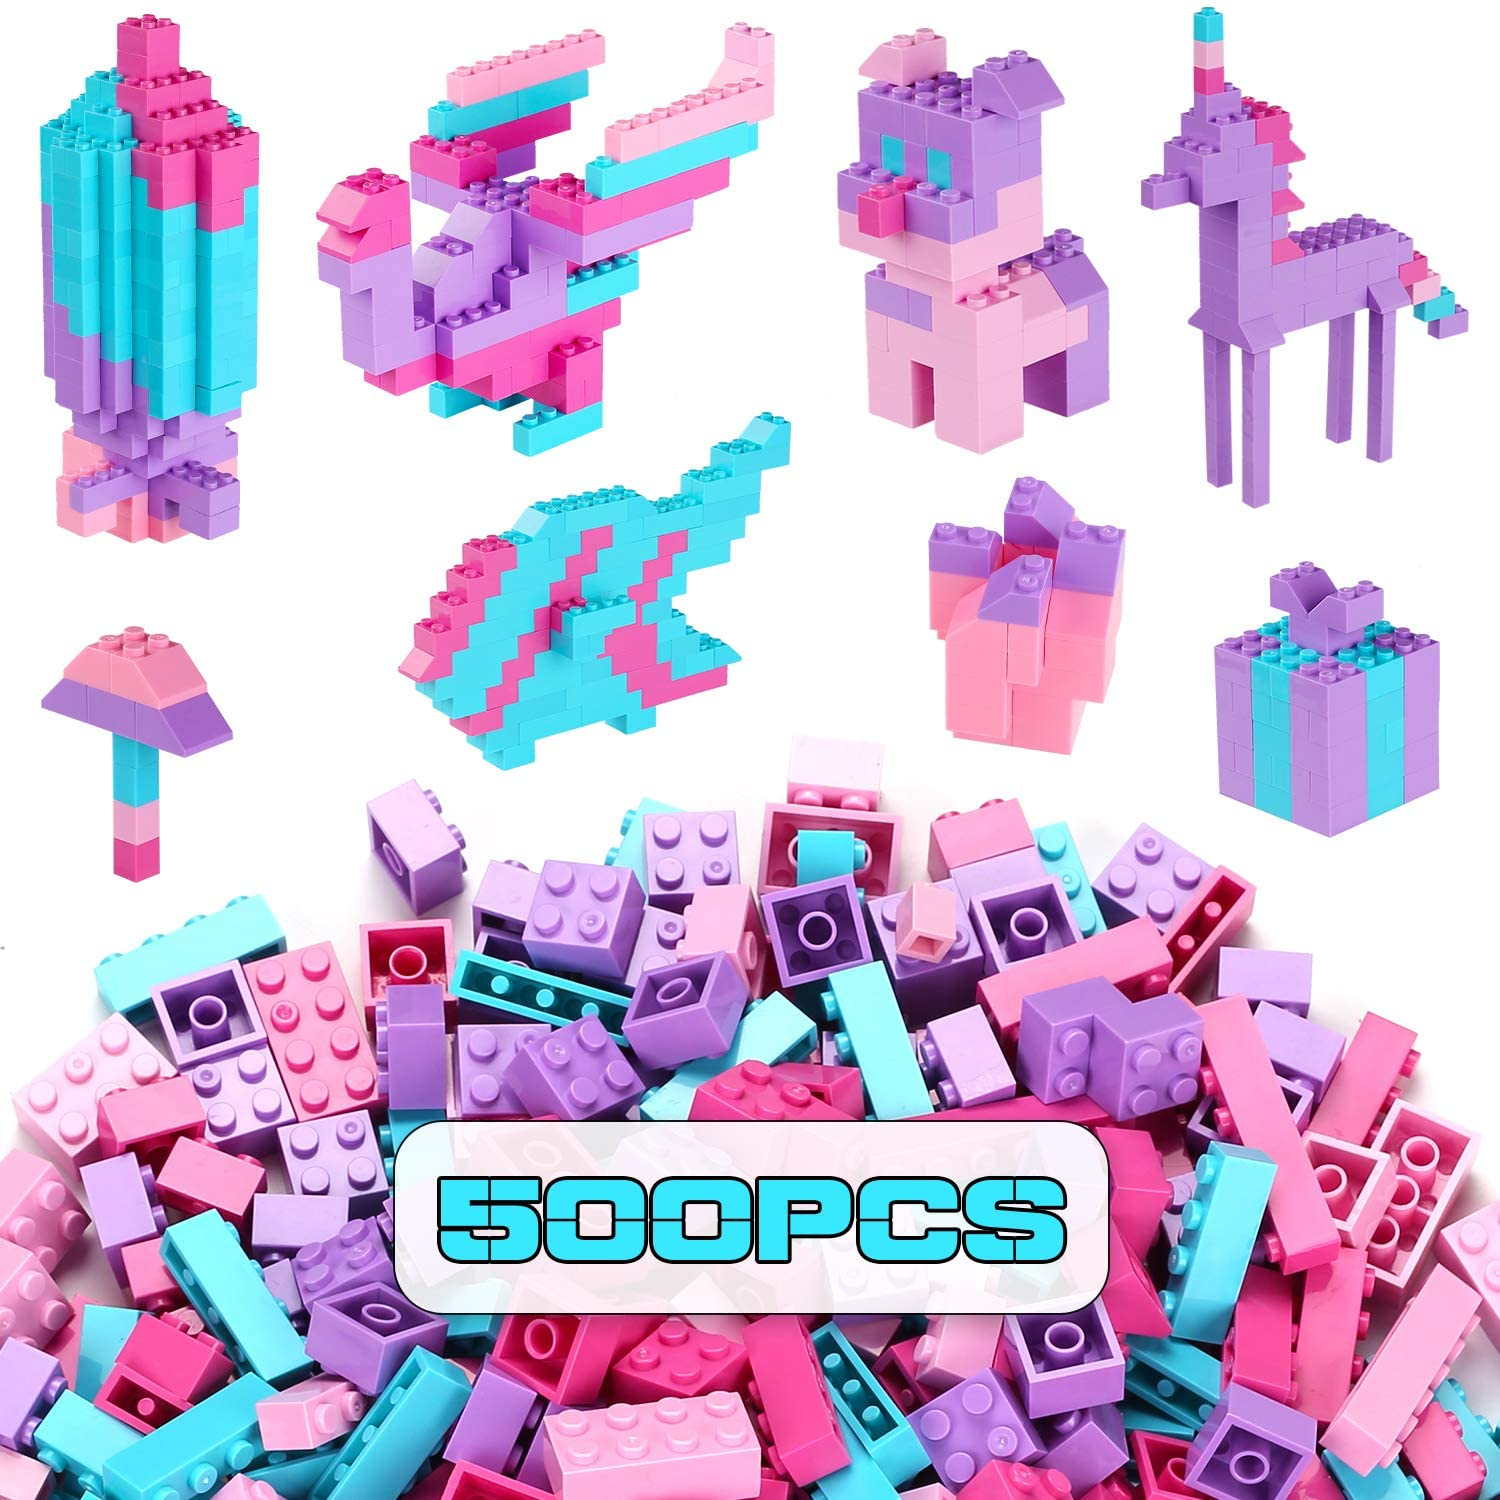 Building Bricks 500 Pieces Set ,Classic Colors Building Blocks Toys,Compatible with All Major Brands,Birthday Gift for Kids (Pink-Purple)